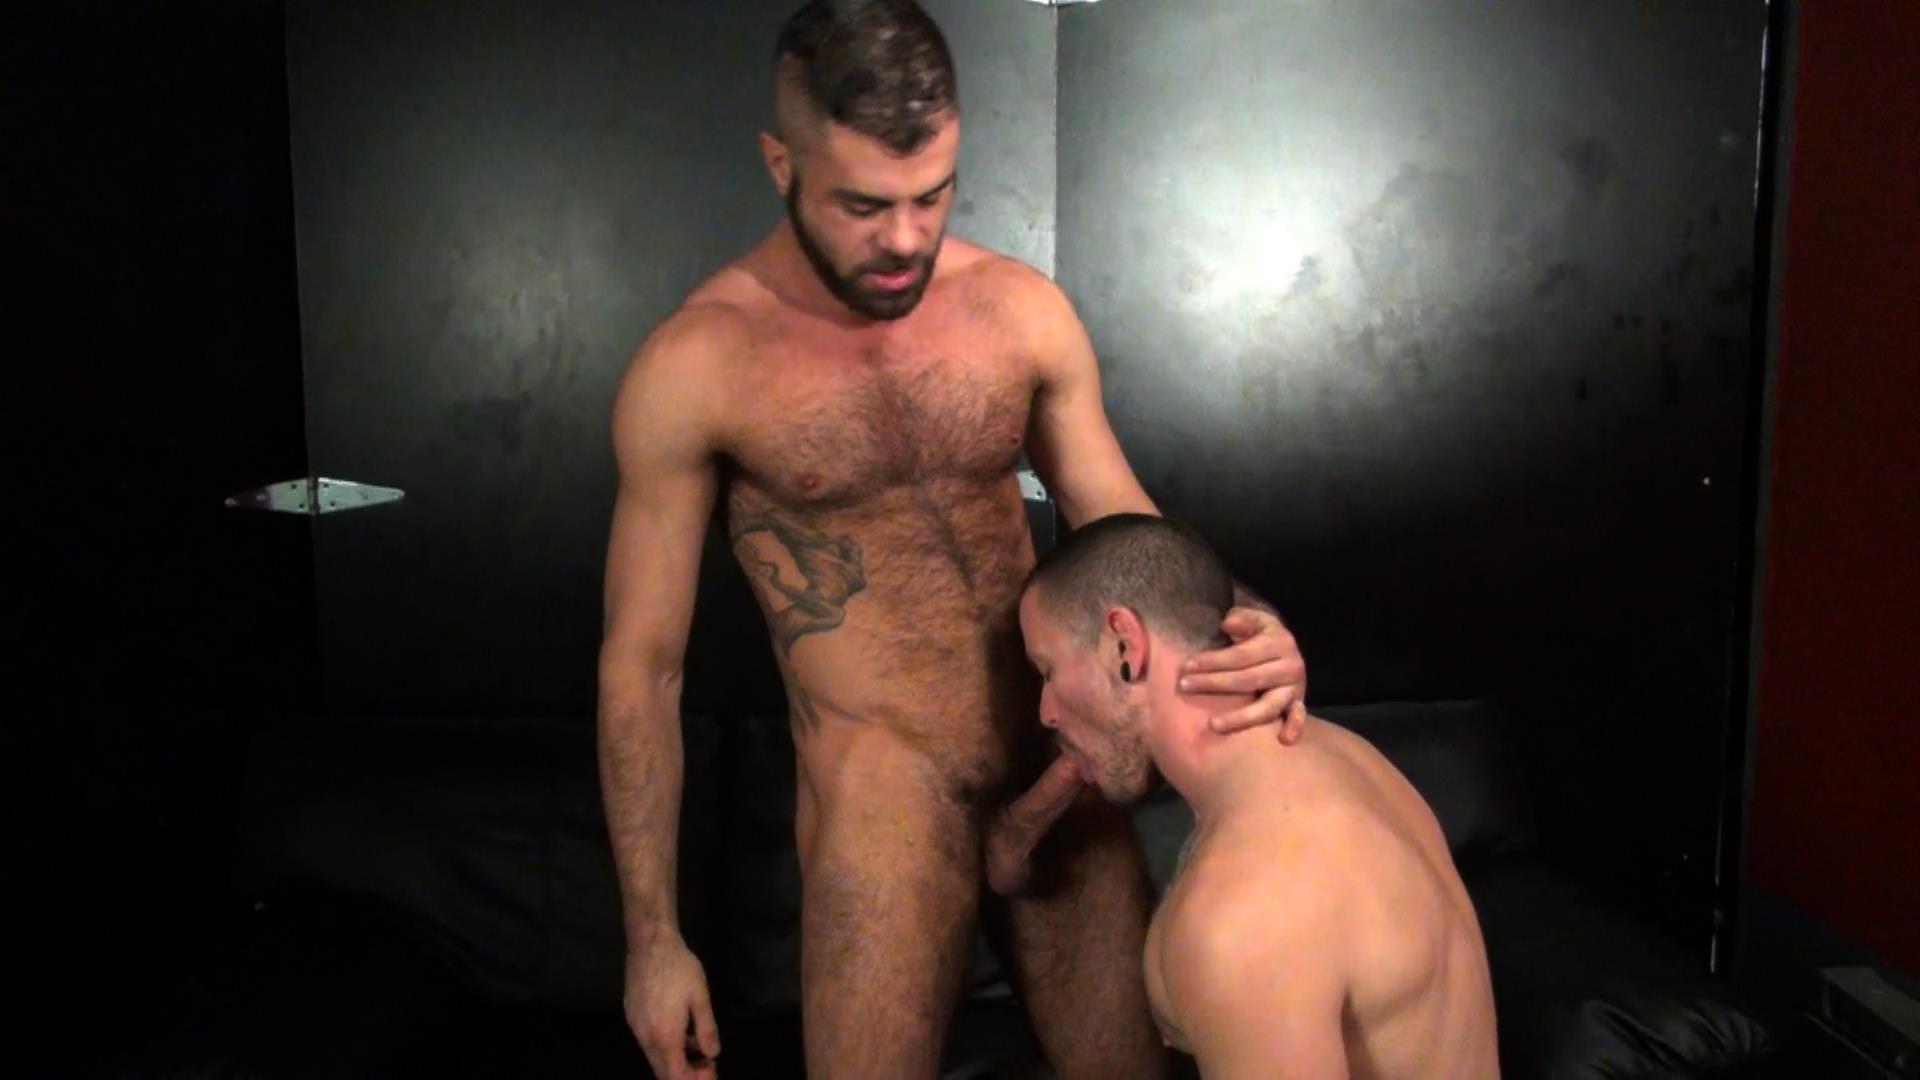 Raw Fuck Club Max Cameron and Markus Isaacs Hairy Muscle Bareback Breeding BBBH Amateur Gay Porn 6 Max Cameron and Markus Isaacs Breeding Each Others Hairy Ass